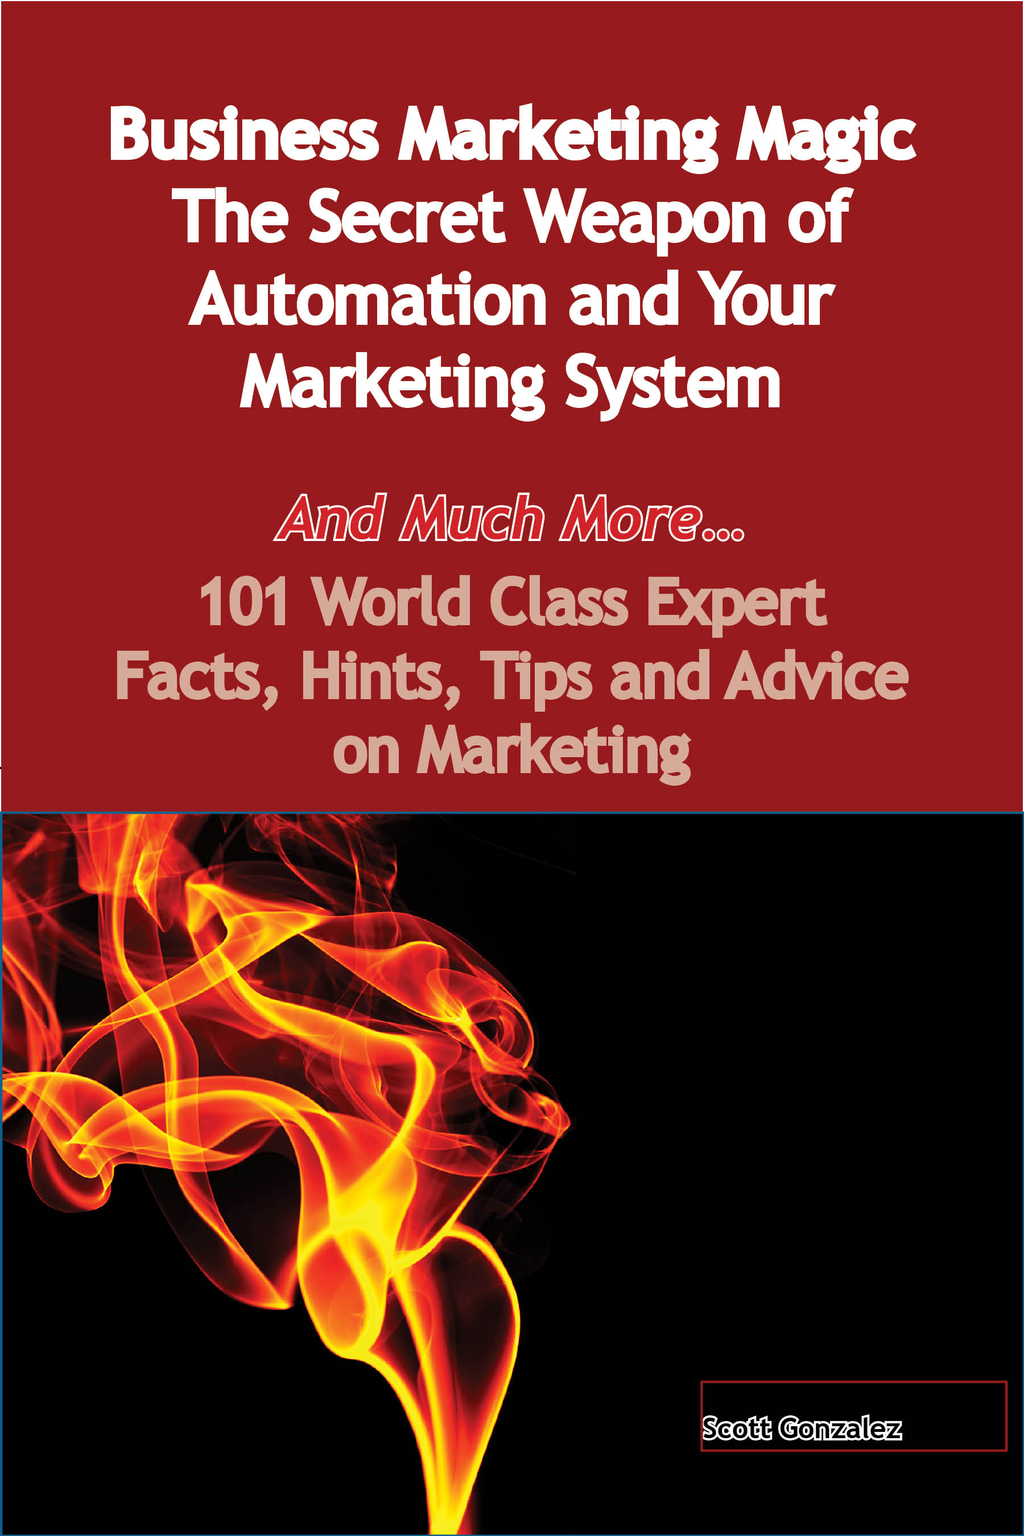 Business Marketing Magic - The Secret Weapon of Automation and Your Marketing System - And Much More - 101 World Class Expert Facts, Hints, Tips and Advice on Marketing By: Scott Gonzalez